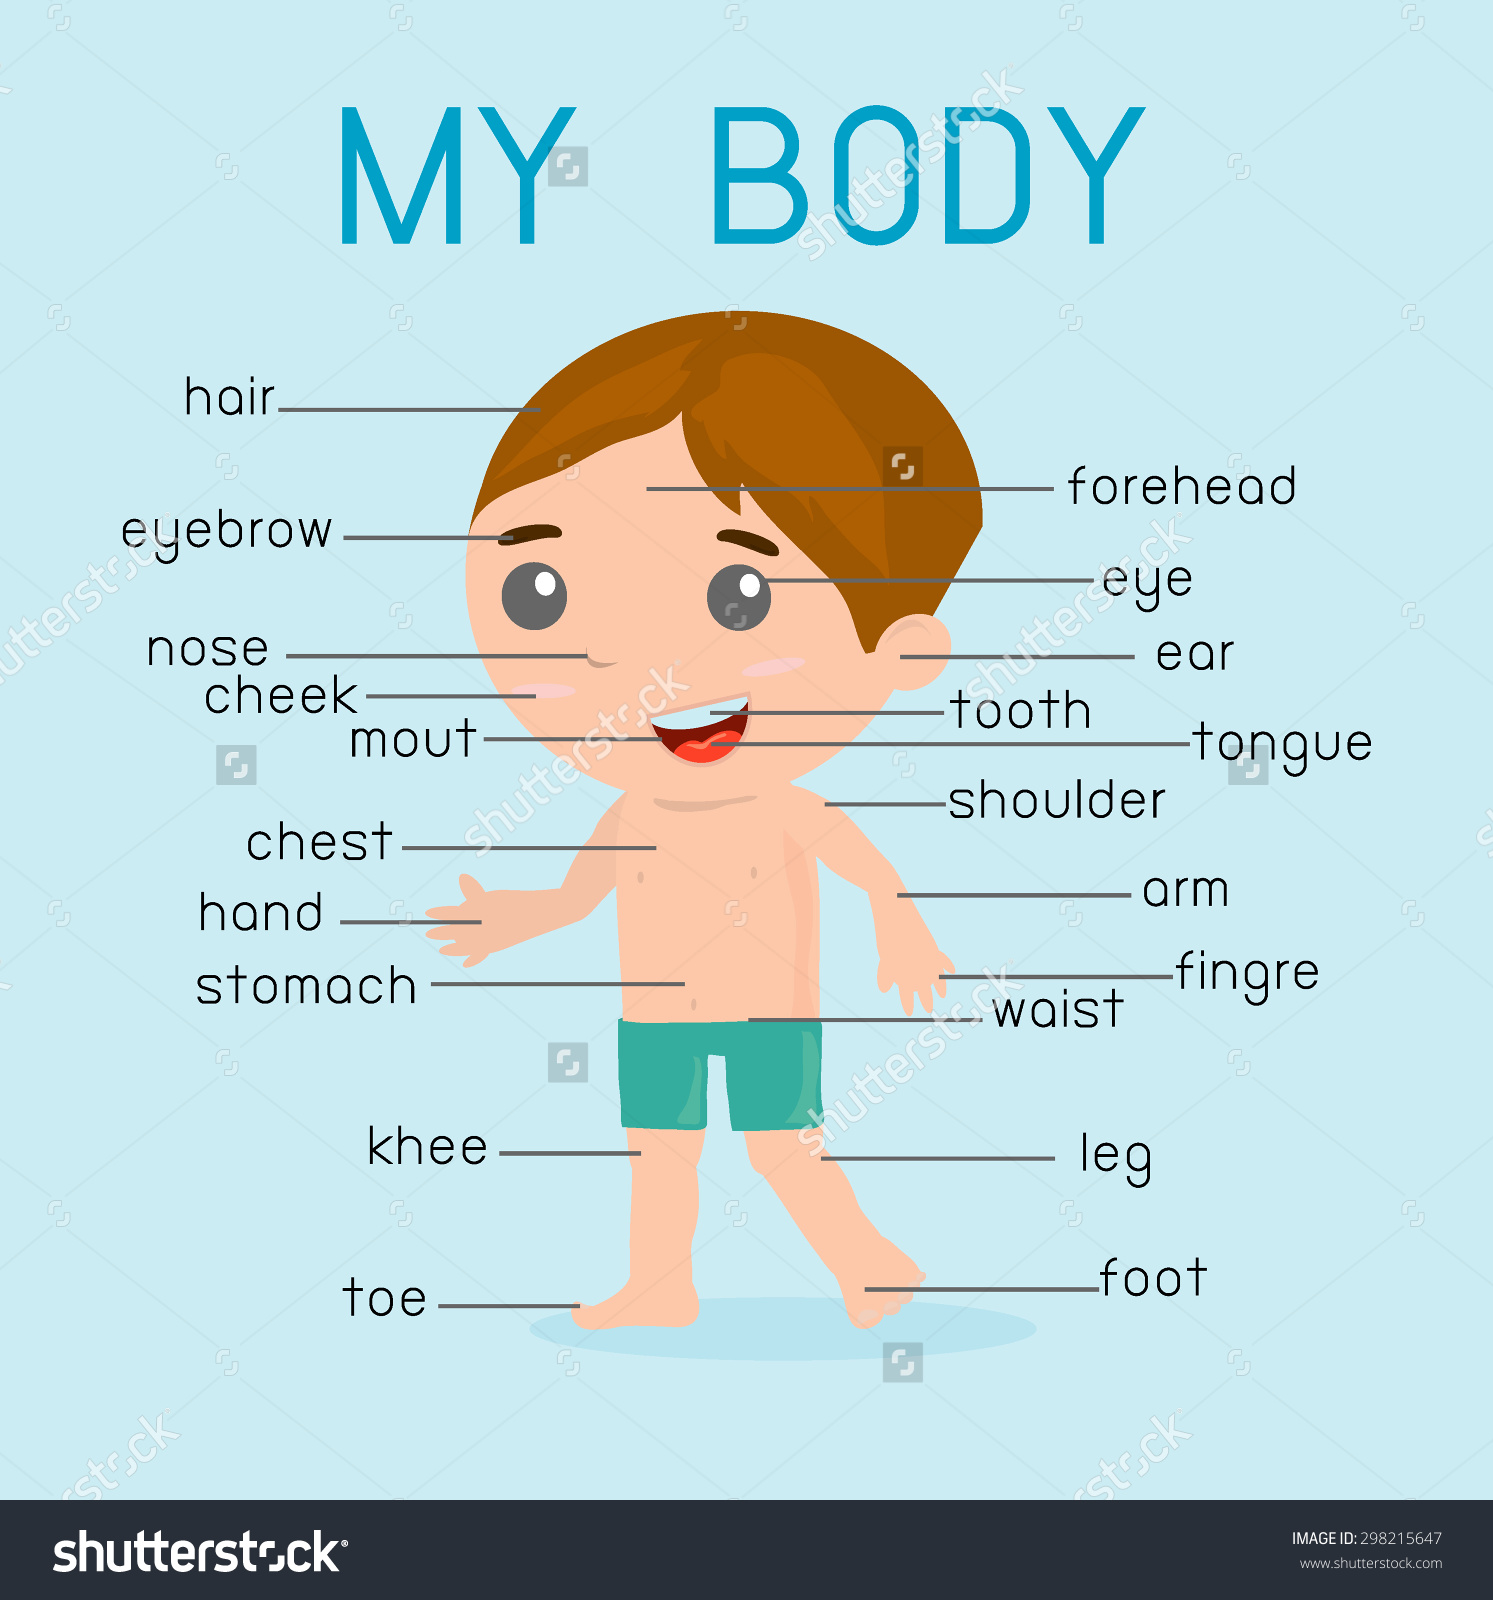 Parts of the body for kids clipart.